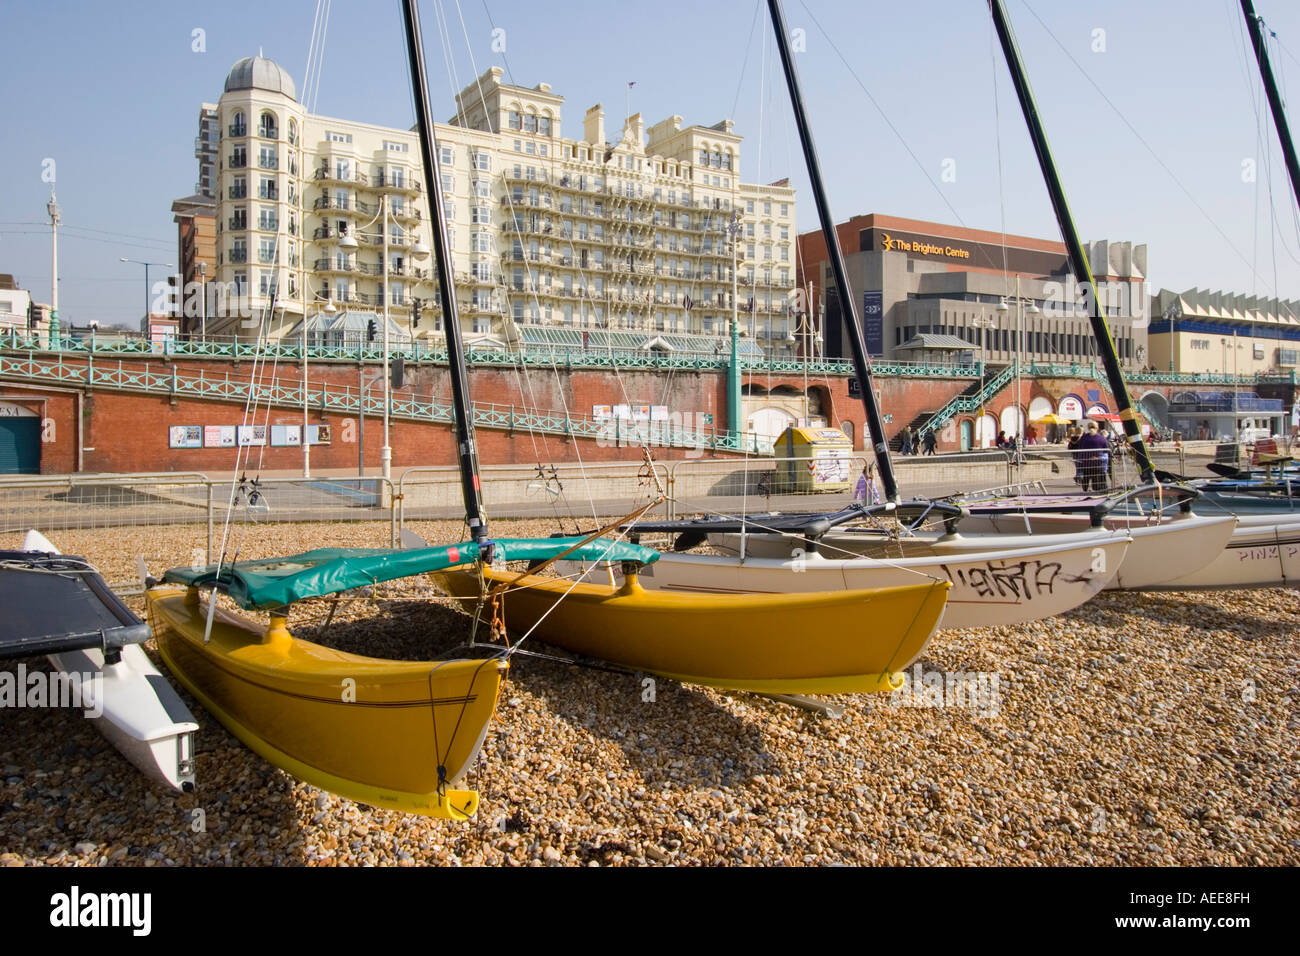 Yachts on the beach in Brighton Stock Photo